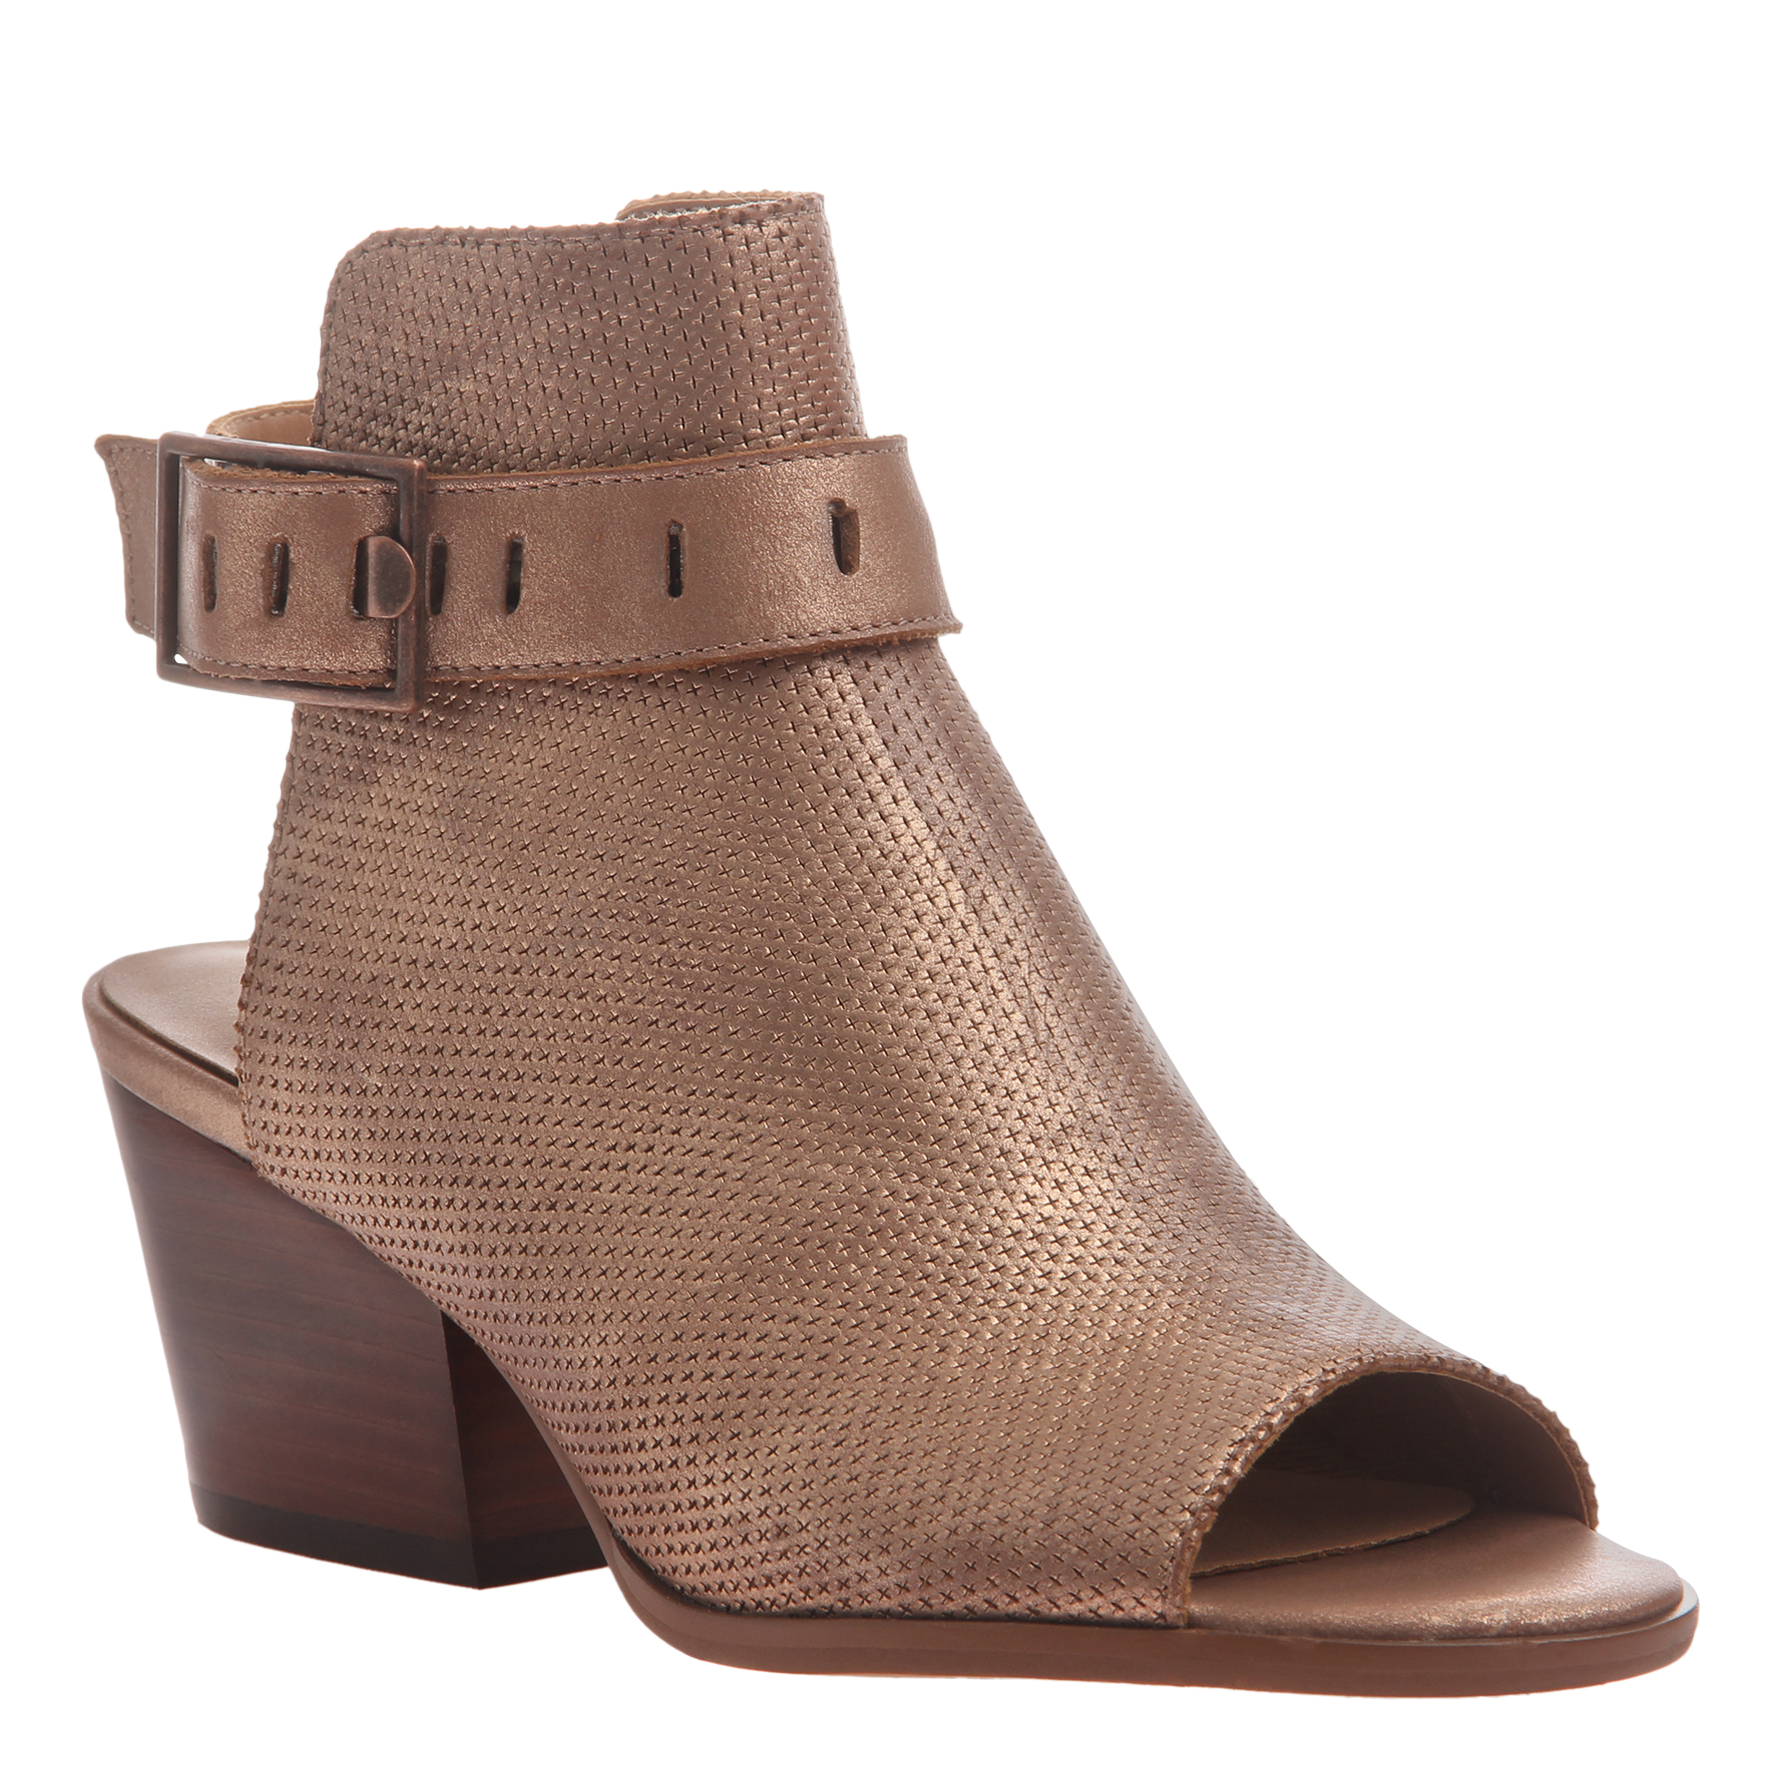 Women's heeled shootie Talullah in copper